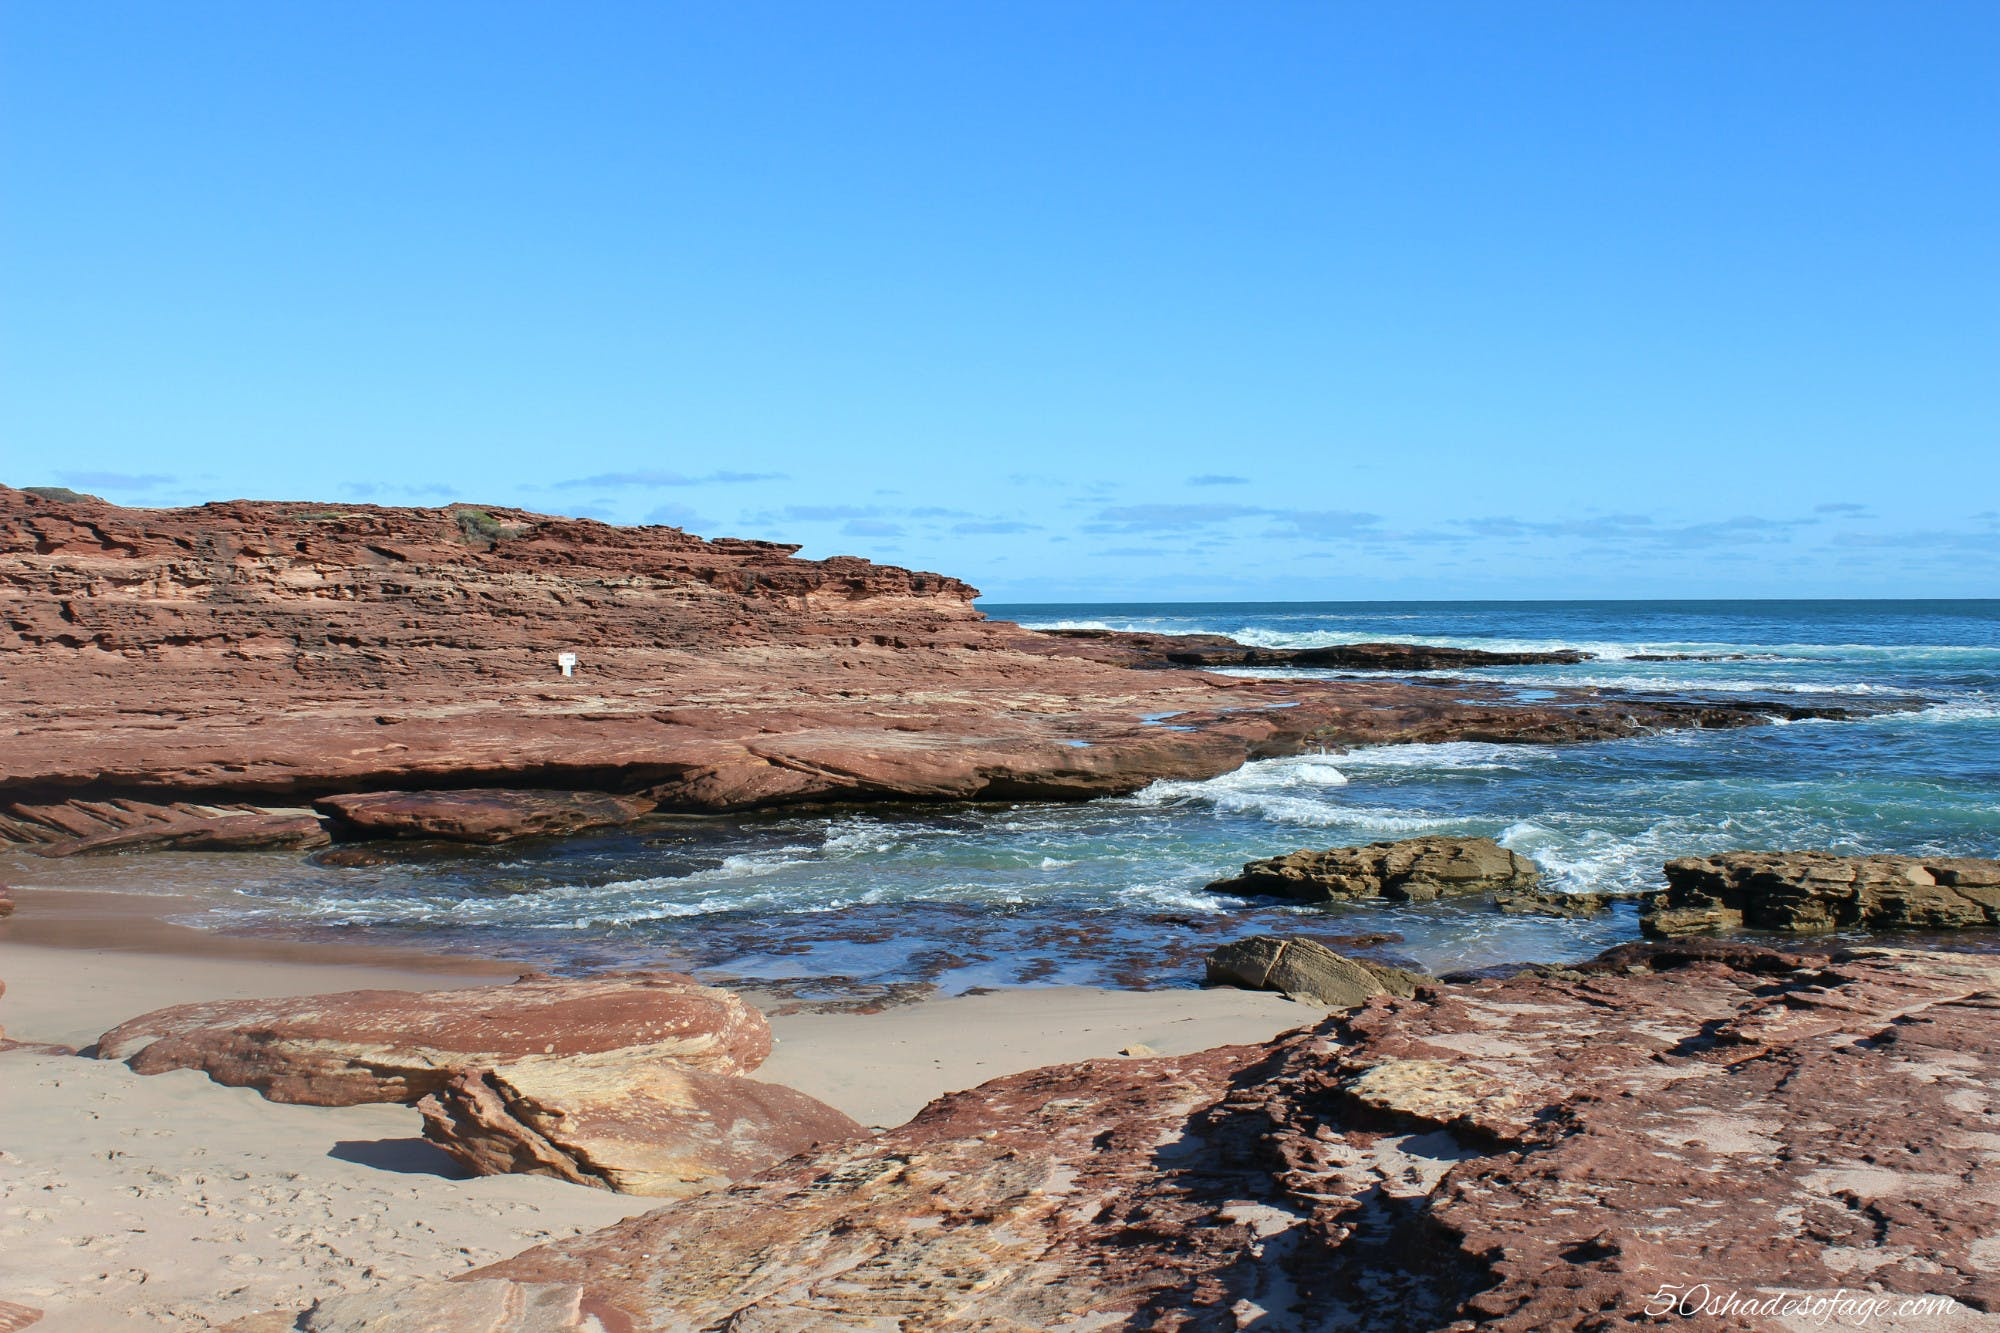 kalbarri resort at Ocean Villas are your perfect choice for Kalbarri family accommodation in Kalbarri, WA